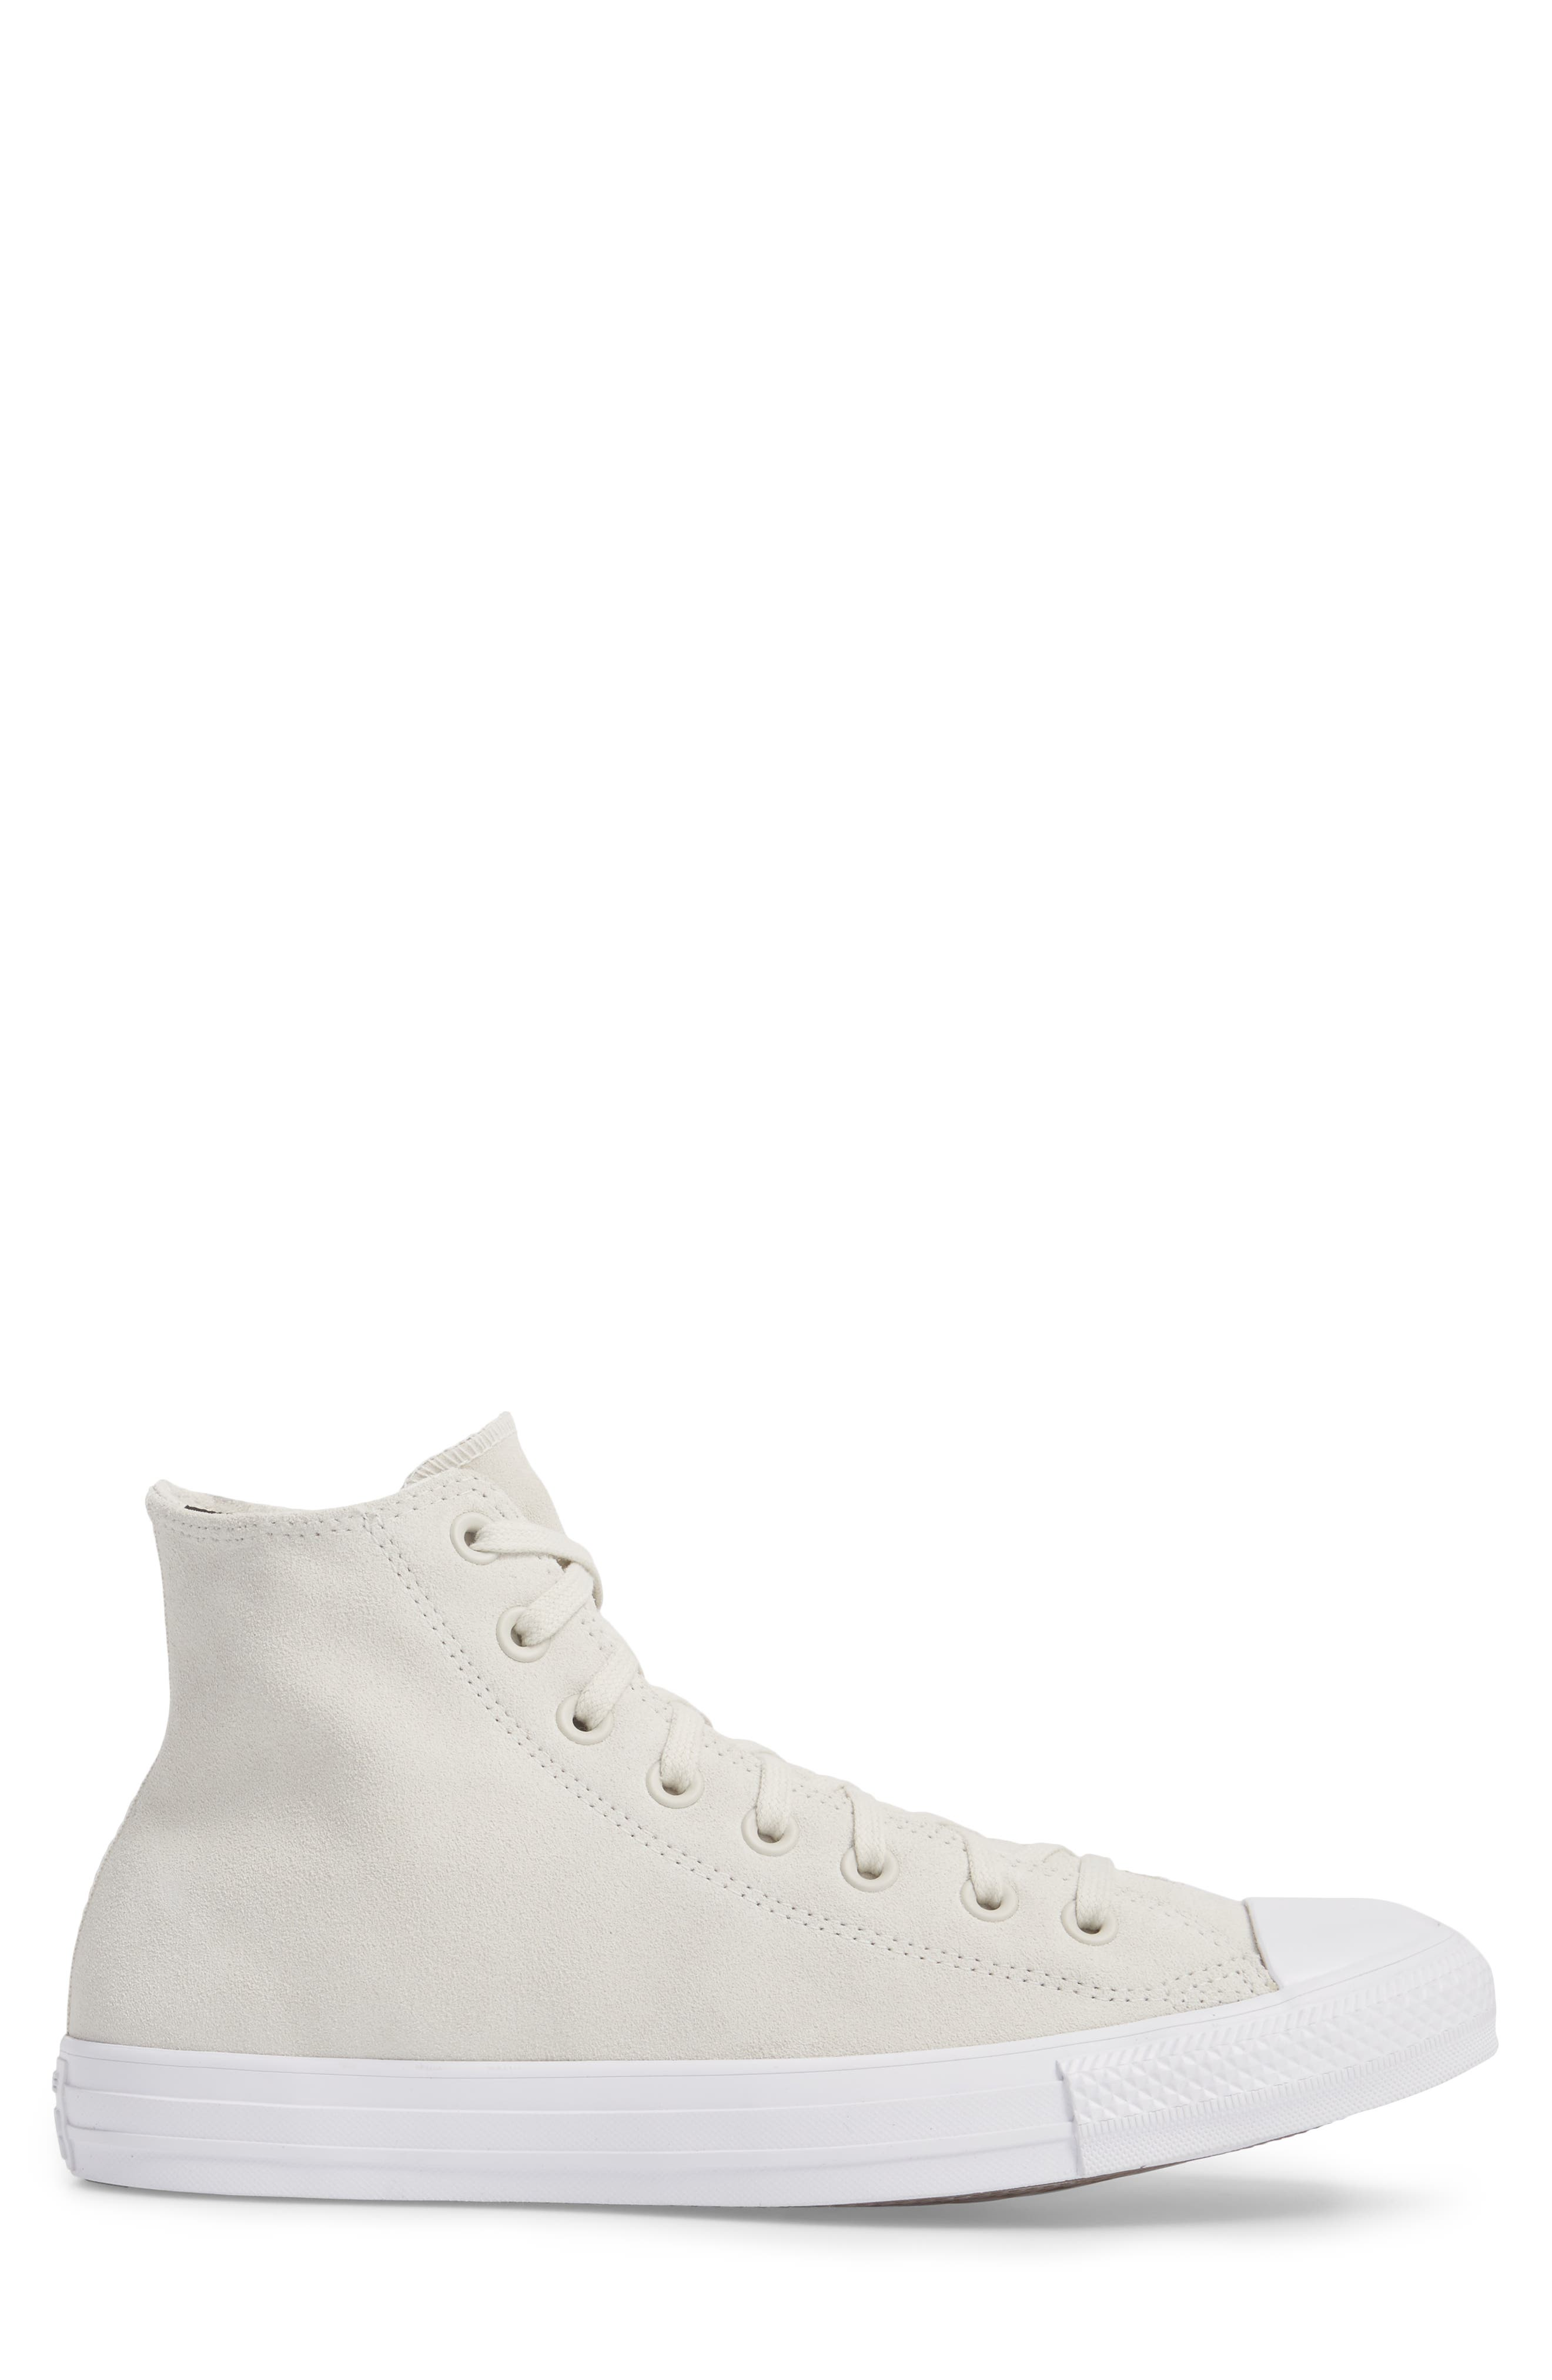 Chuck Taylor<sup>®</sup> All Star<sup>®</sup> Plush Hi Sneaker,                             Alternate thumbnail 3, color,                             Buff Suede